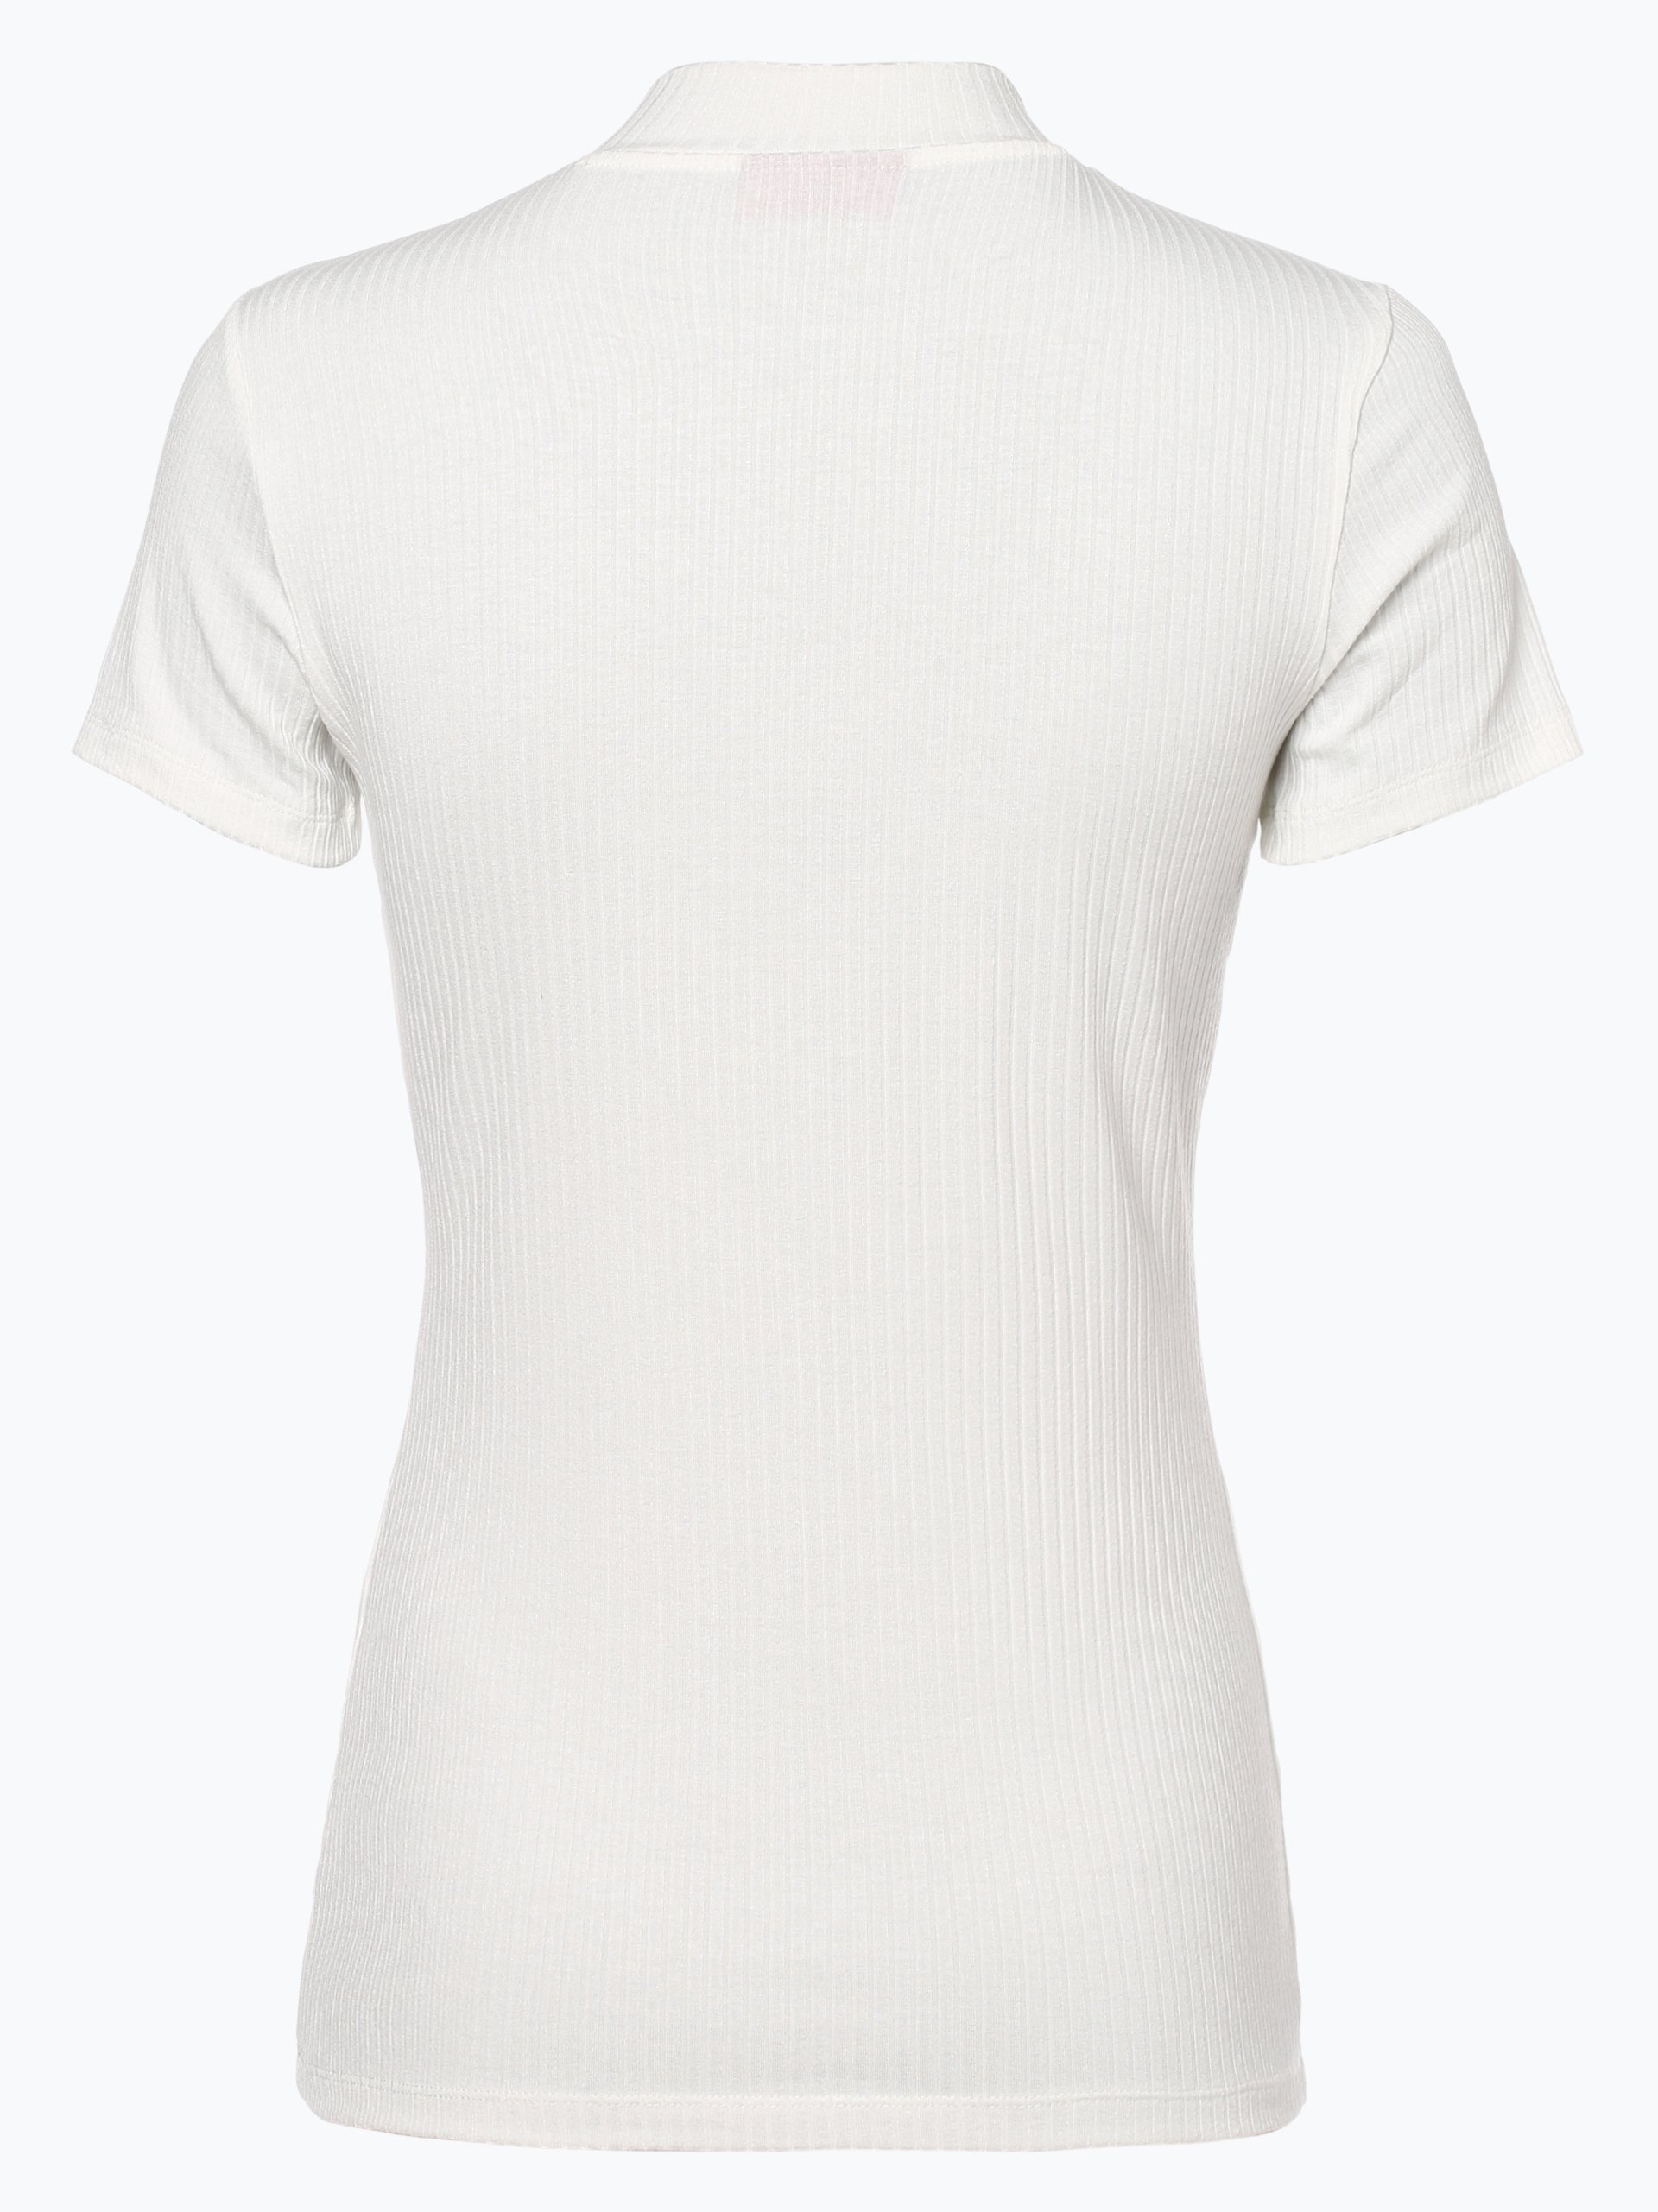 HUGO Damen T-Shirt - Daroline_1